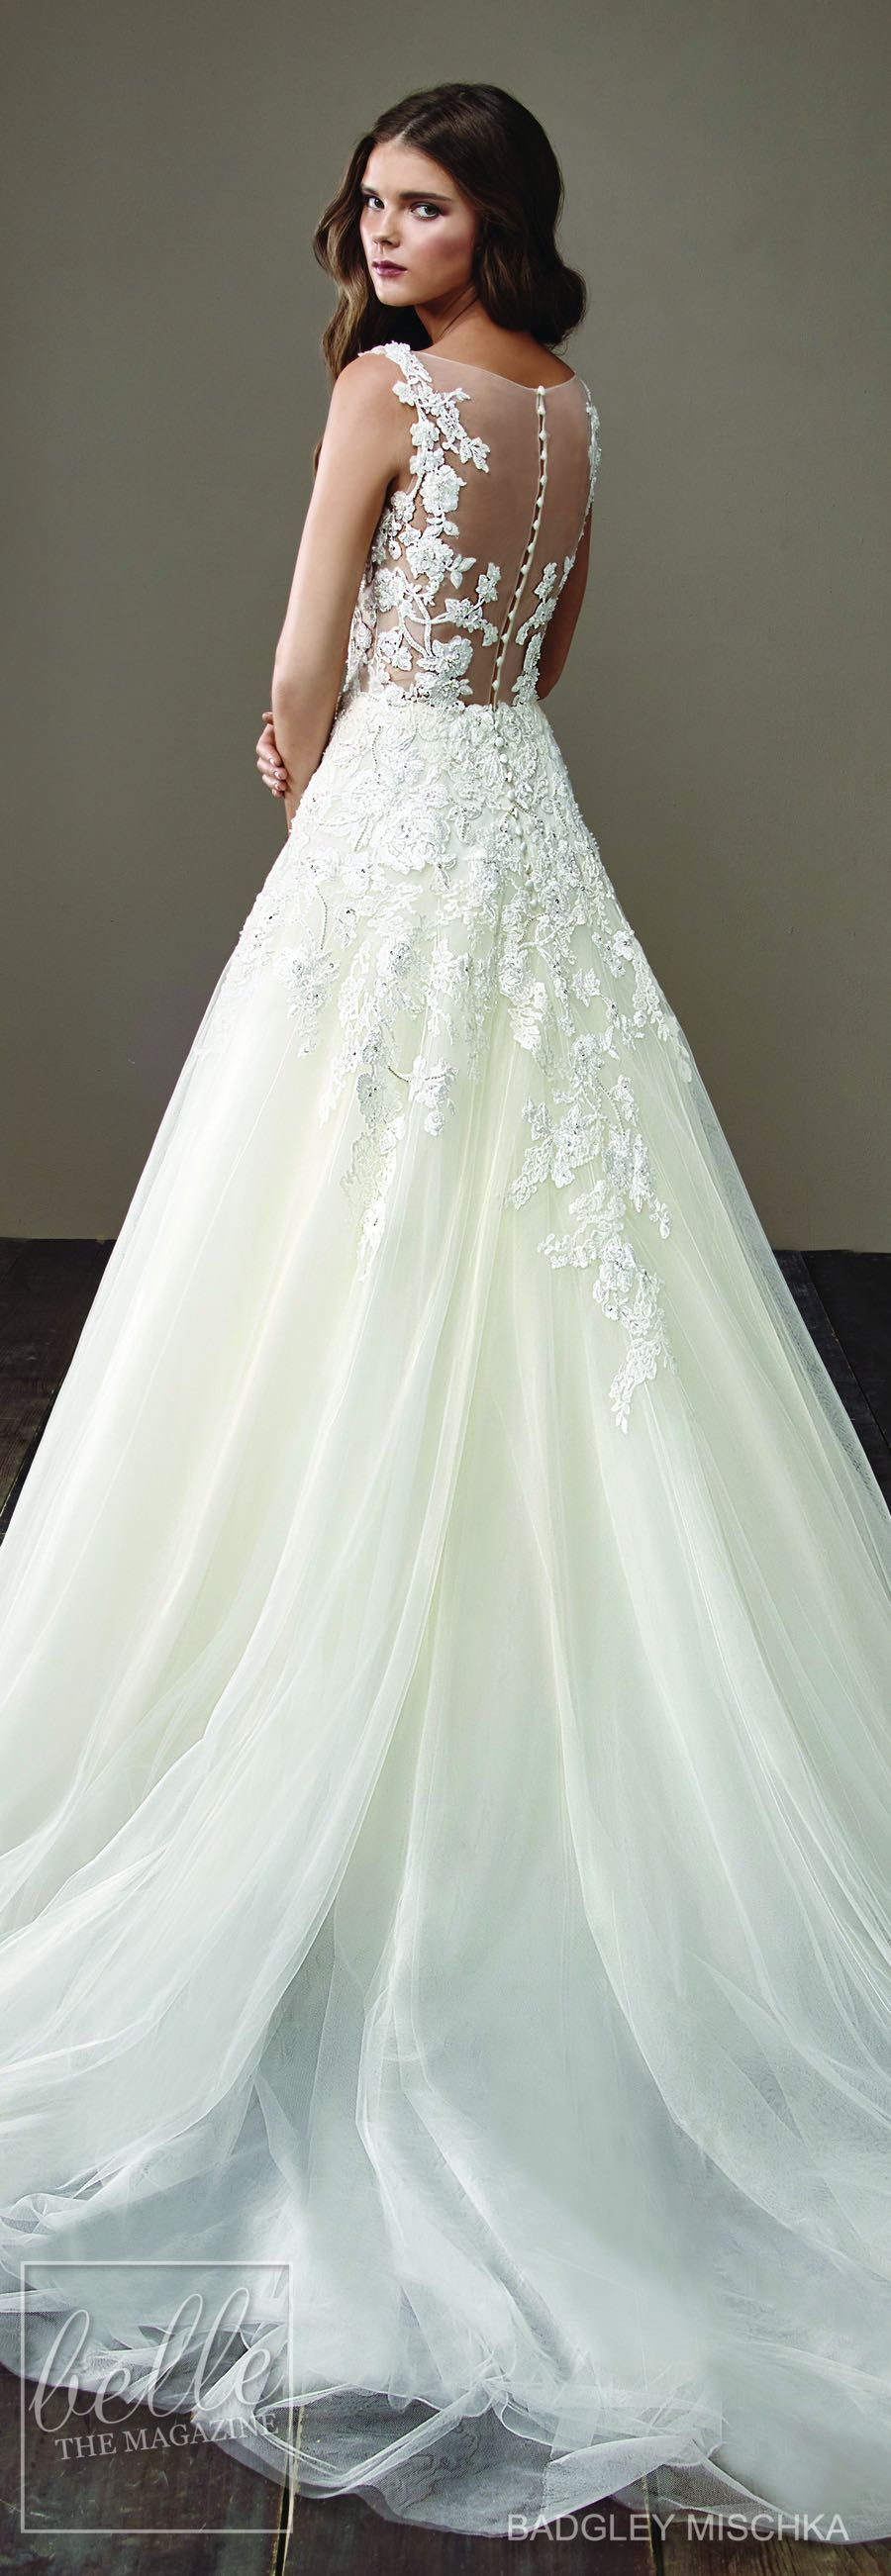 Badgley mischka wedding dress  Wedding Dresses by Badgley Mischka Bride  Collection  Badgley